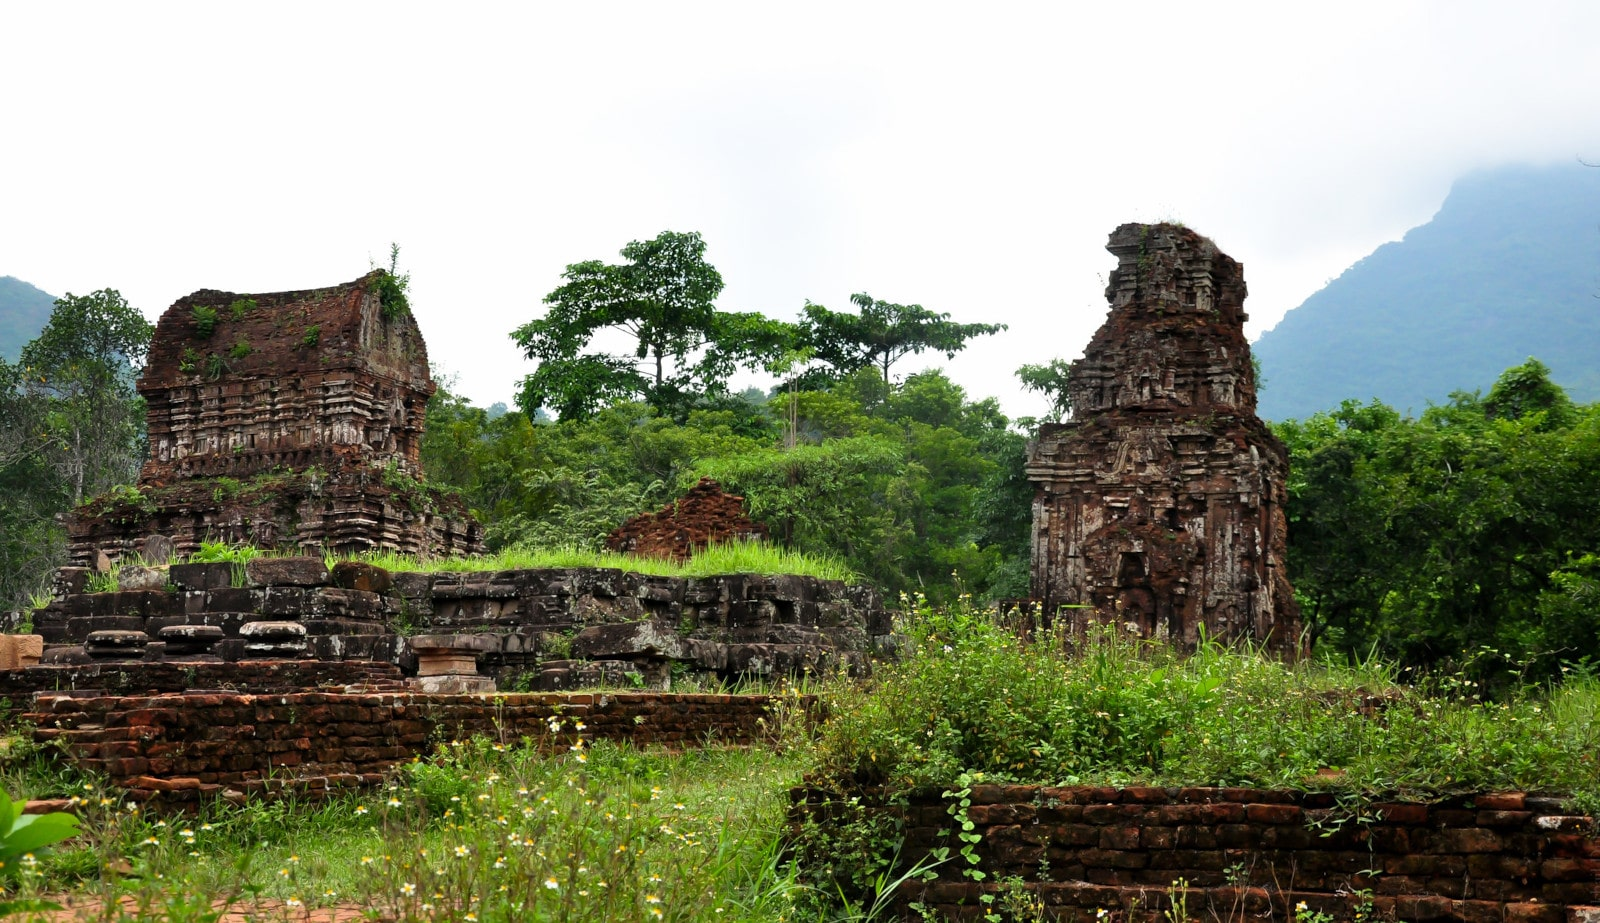 Image of the My Son Sanctuary surrounded by lush green and mountains in Hoi An, Vietnam